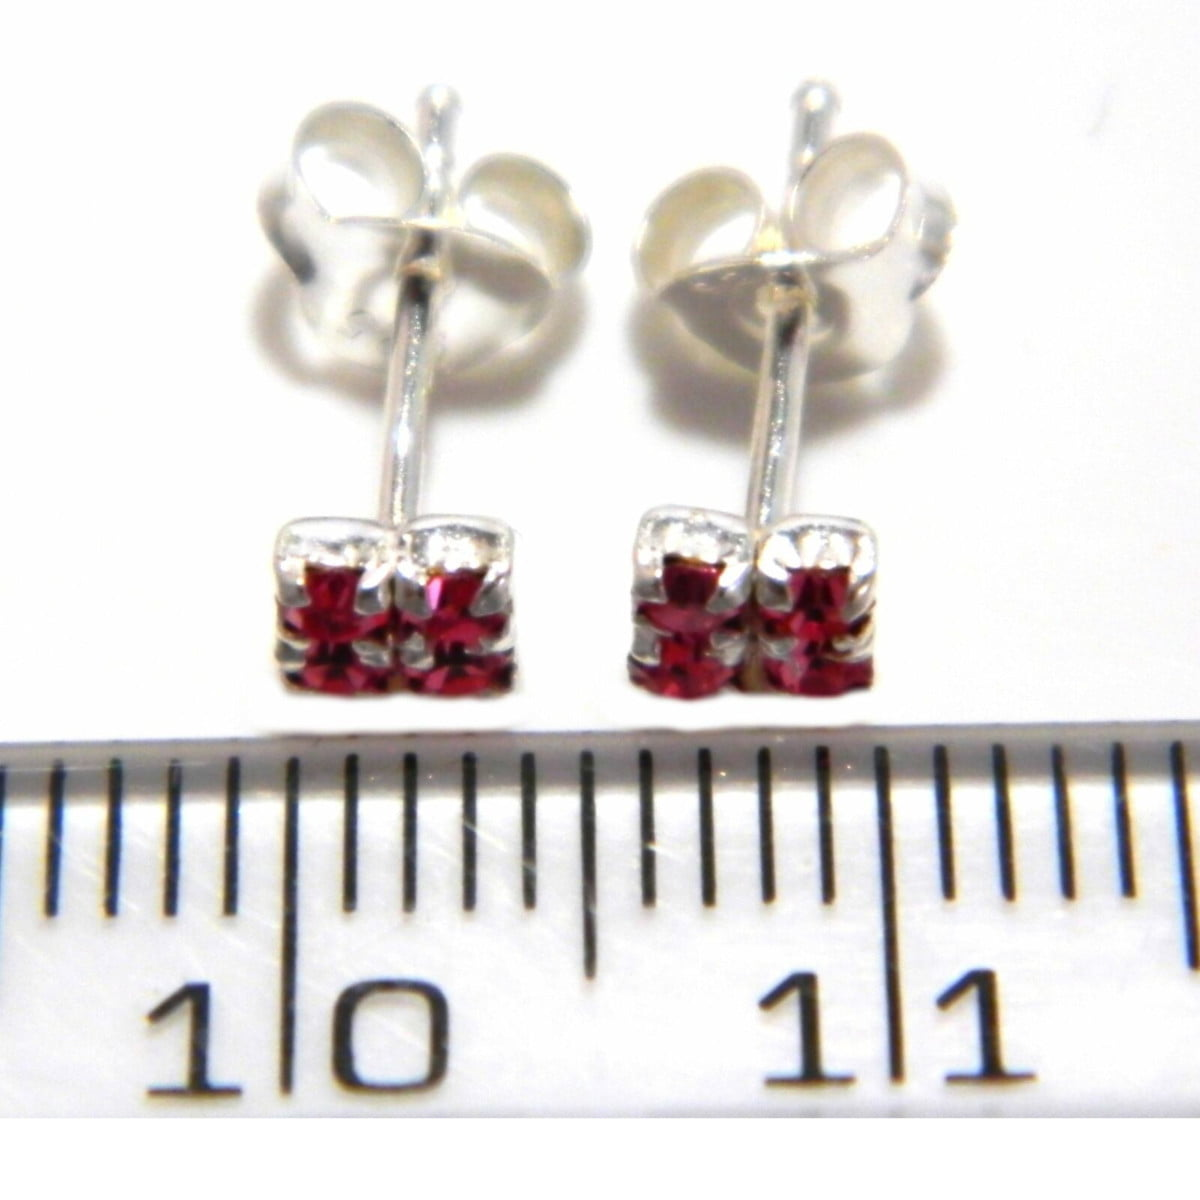 4 mm pink coloured crystal square stud earrings in sterling silver ruler